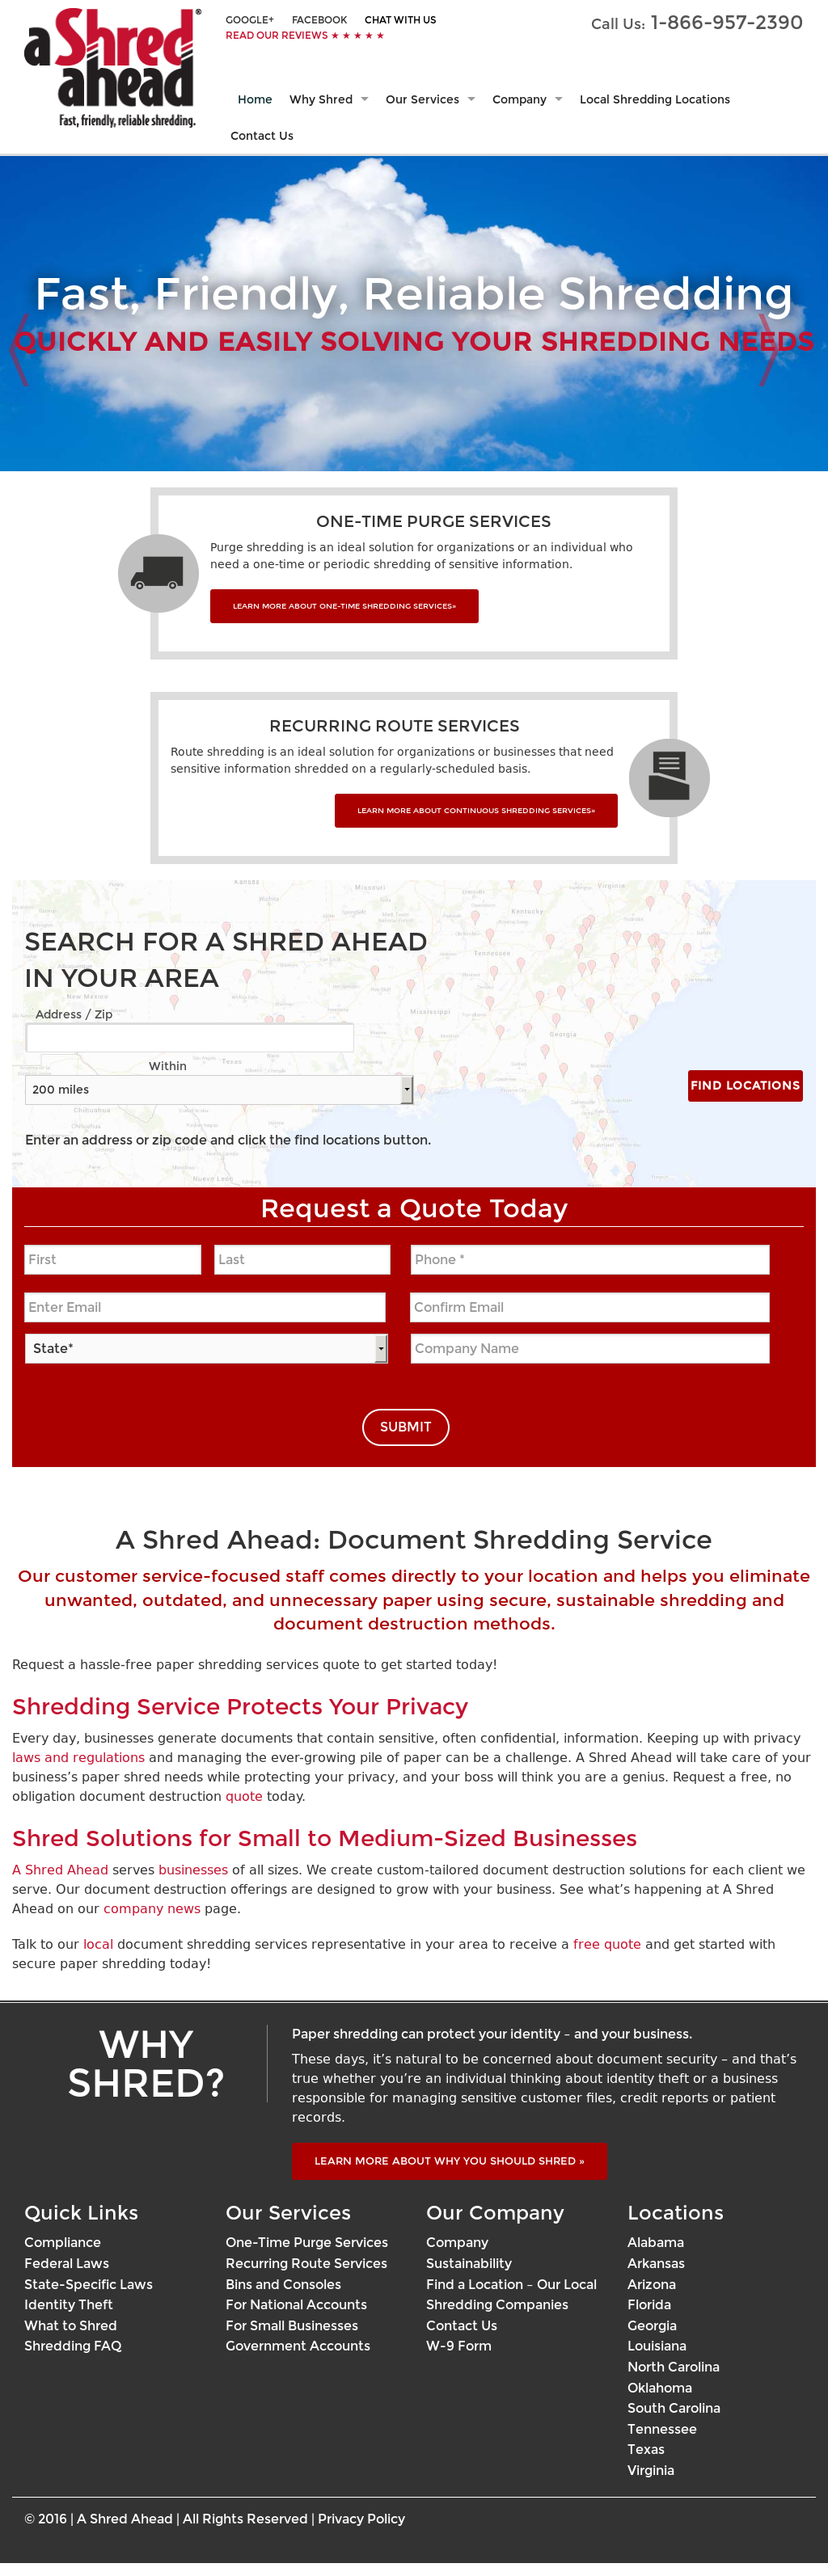 A Shred Ahead Competitors, Revenue and Employees - Owler Company Profile